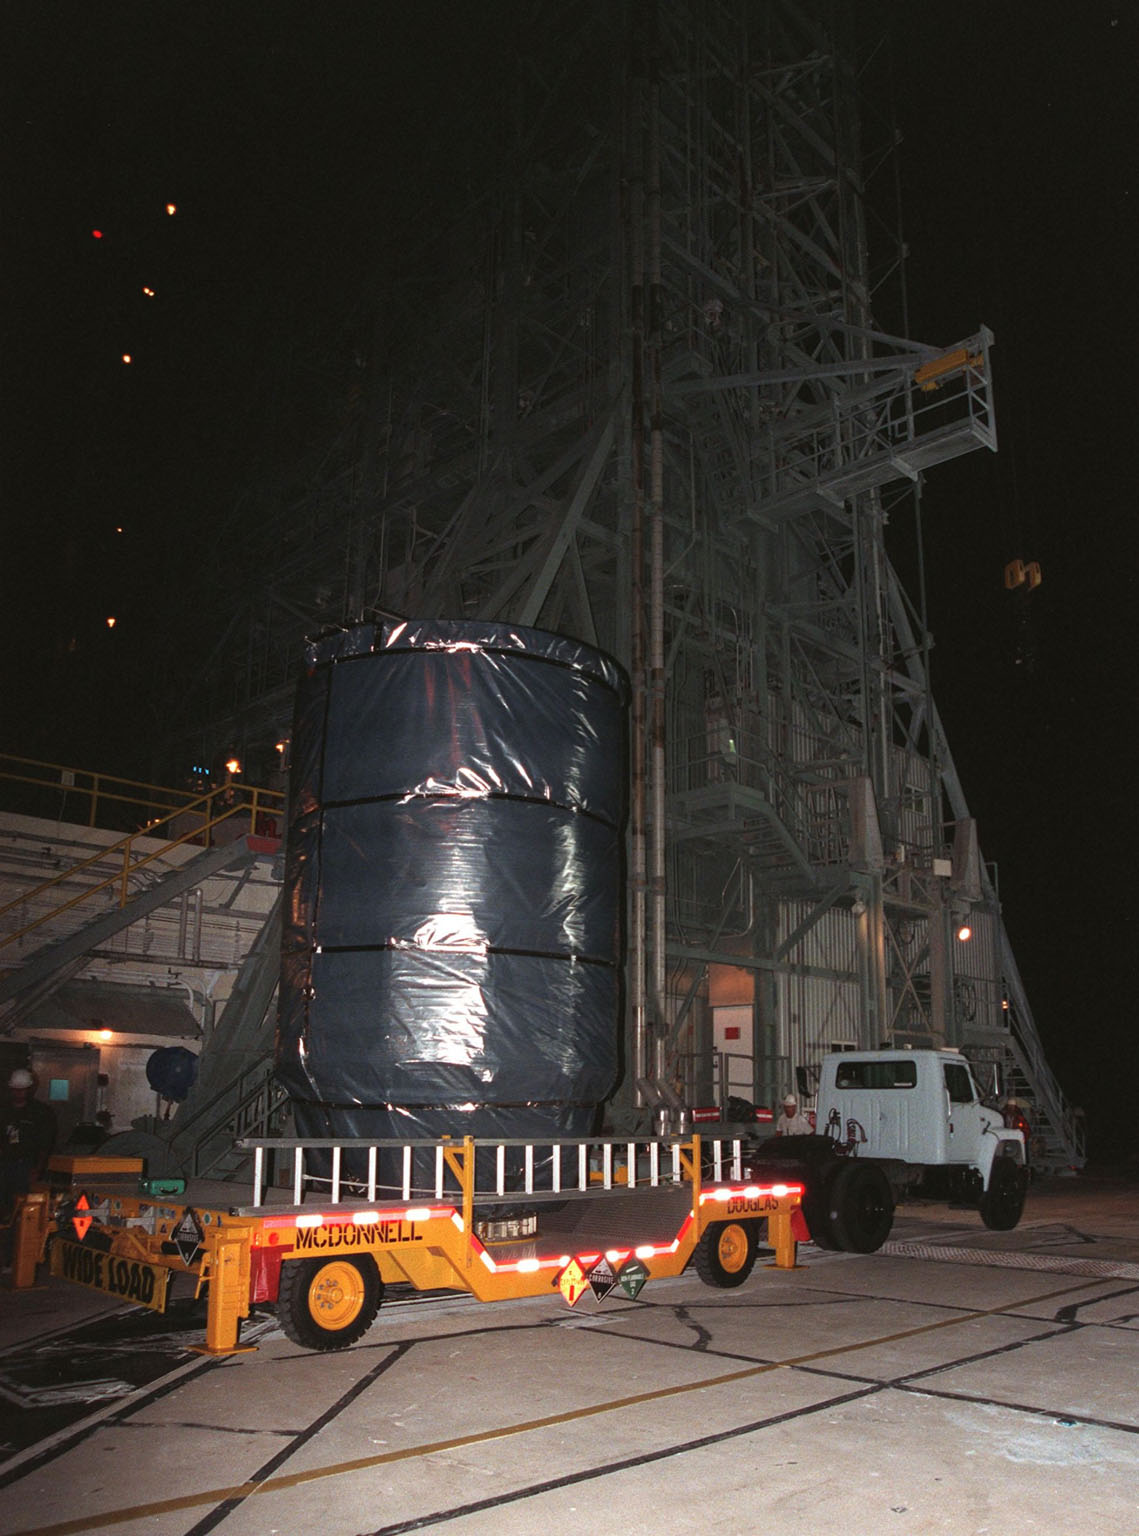 In the early morning, the Stardust spacecraft, with the third stage of a Boeing Delta II rocket attached, arrives atop a transporter at Launch Pad 17-A, Cape Canaveral Air Station. The second and third stages of the rocket will be mated and prepared for liftoff on Feb. 6. Stardust is destined for a close encounter with the comet Wild 2 in January 2004. Using a silicon-based substance called aerogel, Stardust will capture comet particles flying off the nucleus of the comet. The spacecraft also will bring back samples of interstellar dust. These materials consist of ancient pre-solar interstellar grains and other remnants left over from the formation of the solar system. Scientists expect their analysis to provide important insights into the evolution of the sun and planets and possibly into the origin of life itself. The collected samples will return to Earth in a sample return capsule to be jettisoned as Stardust swings by Earth in January 2006